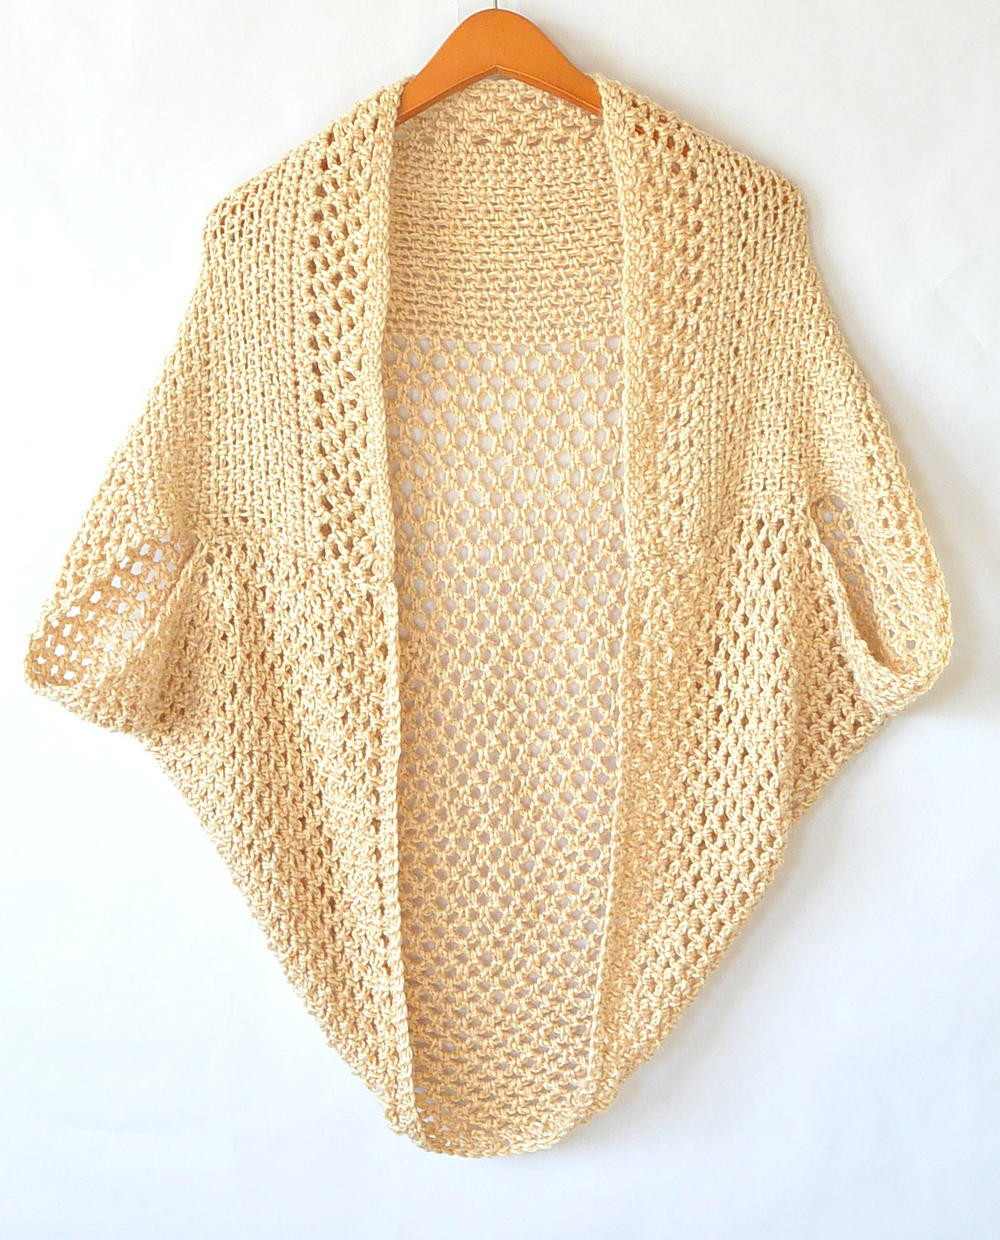 Beautiful Light Mod Mesh Crochet Cardigan Sweater Sweaters Crochet Patterns Of Luxury 45 Images Sweaters Crochet Patterns